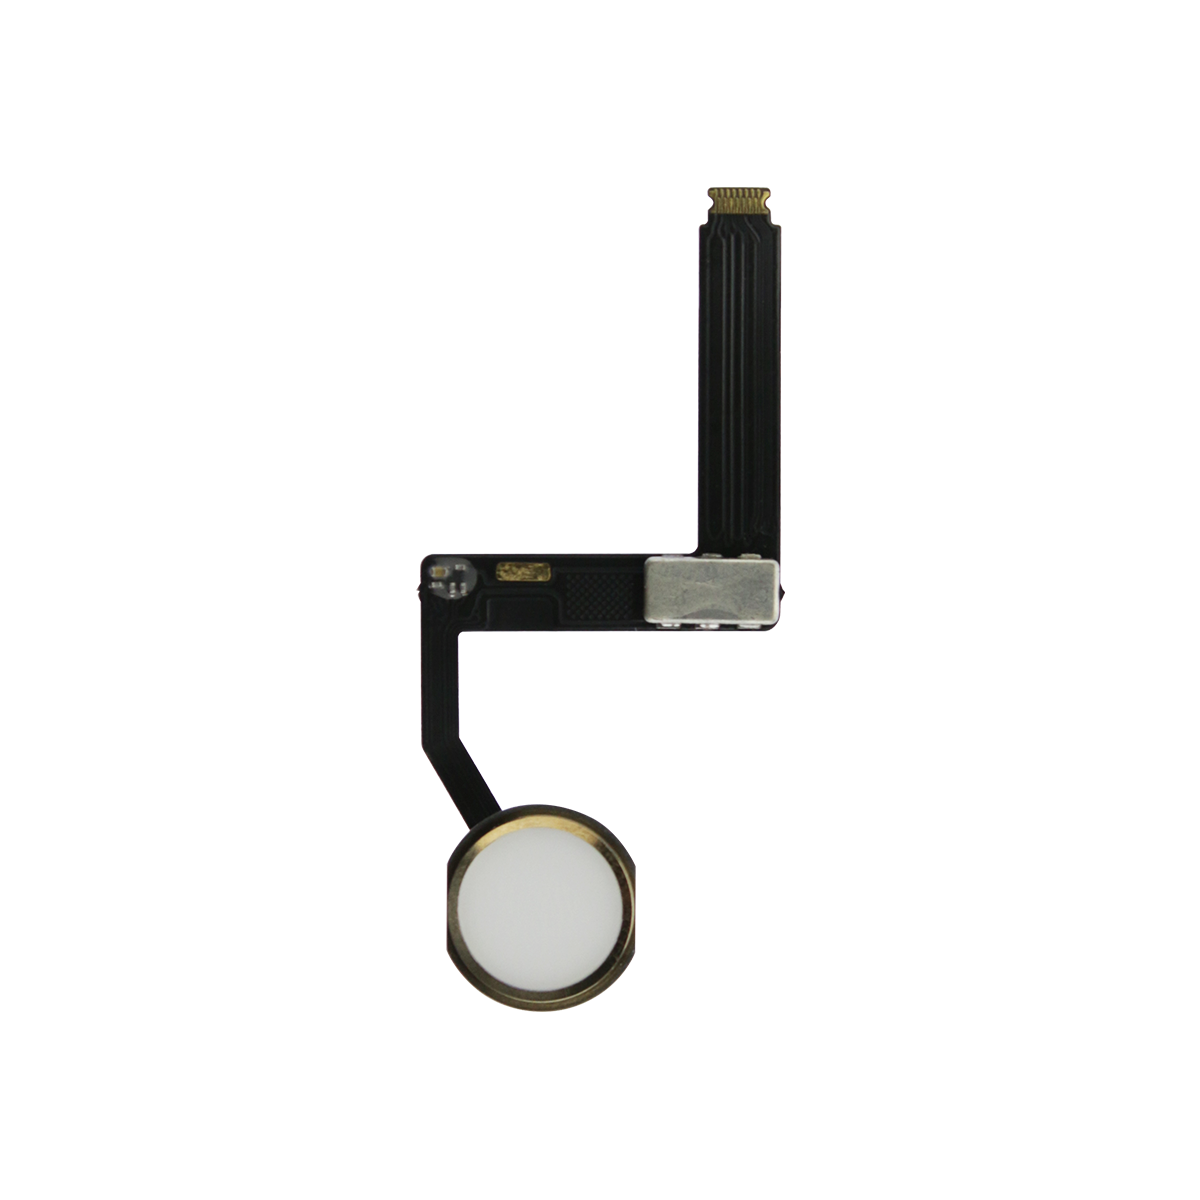 ipad-pro-9-7-inch-home-button-assembly-white-gold_S4VIAGIE2PRH.png